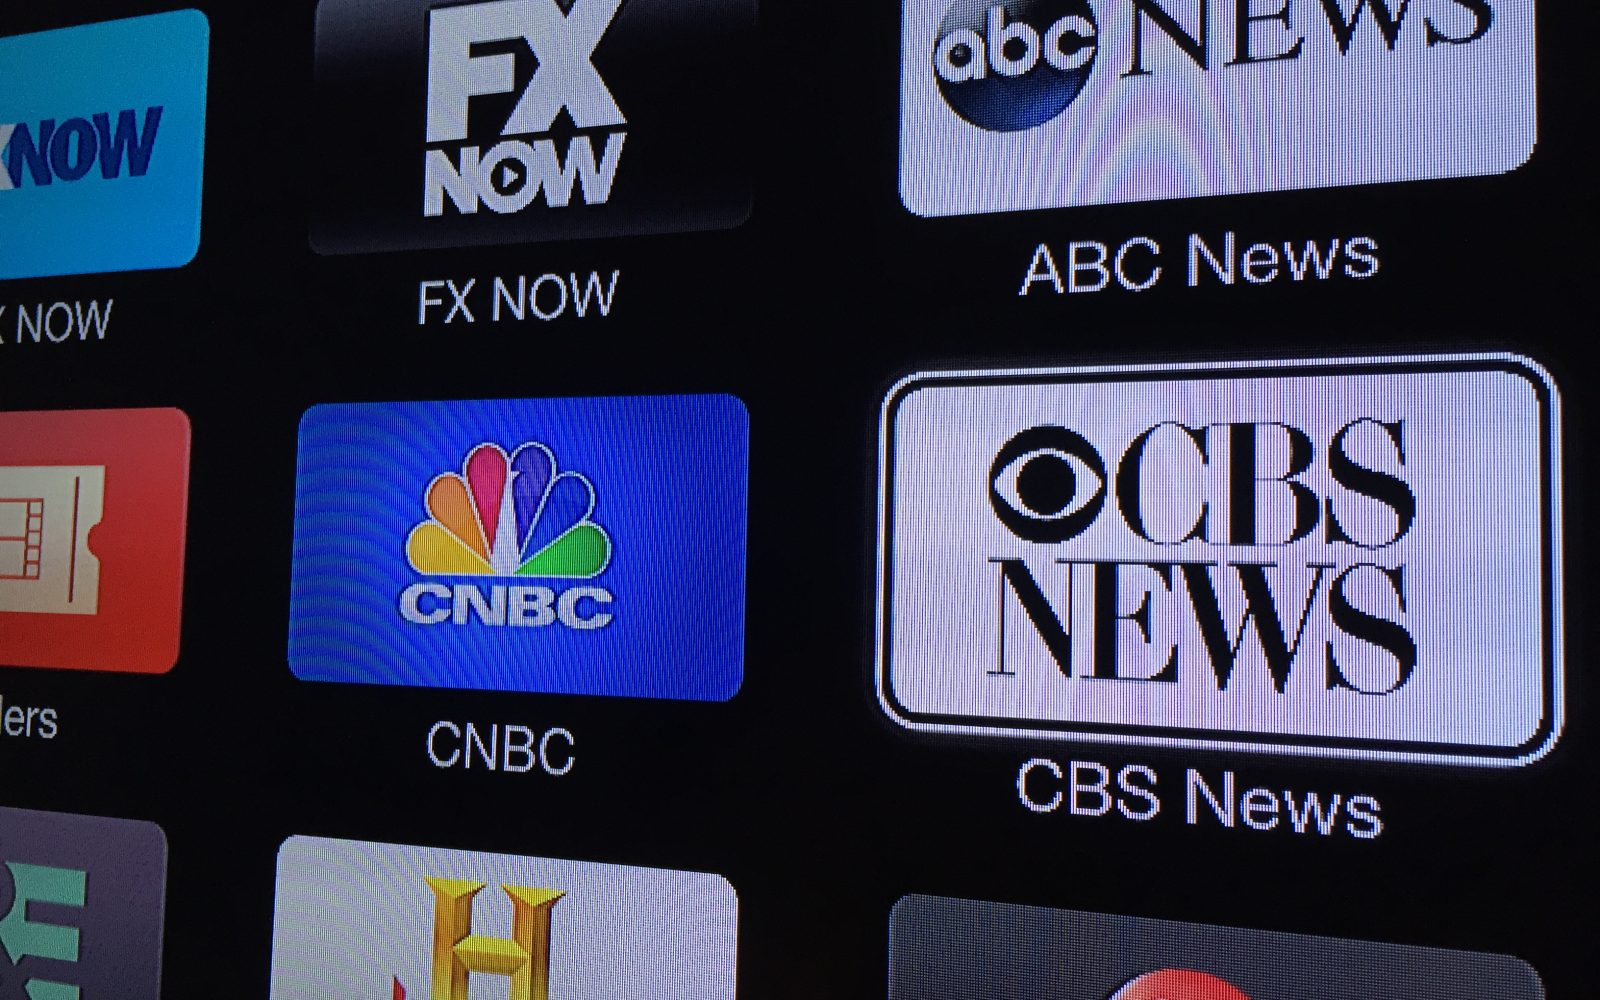 Apple TV updated with CBS News channel including free CBSN